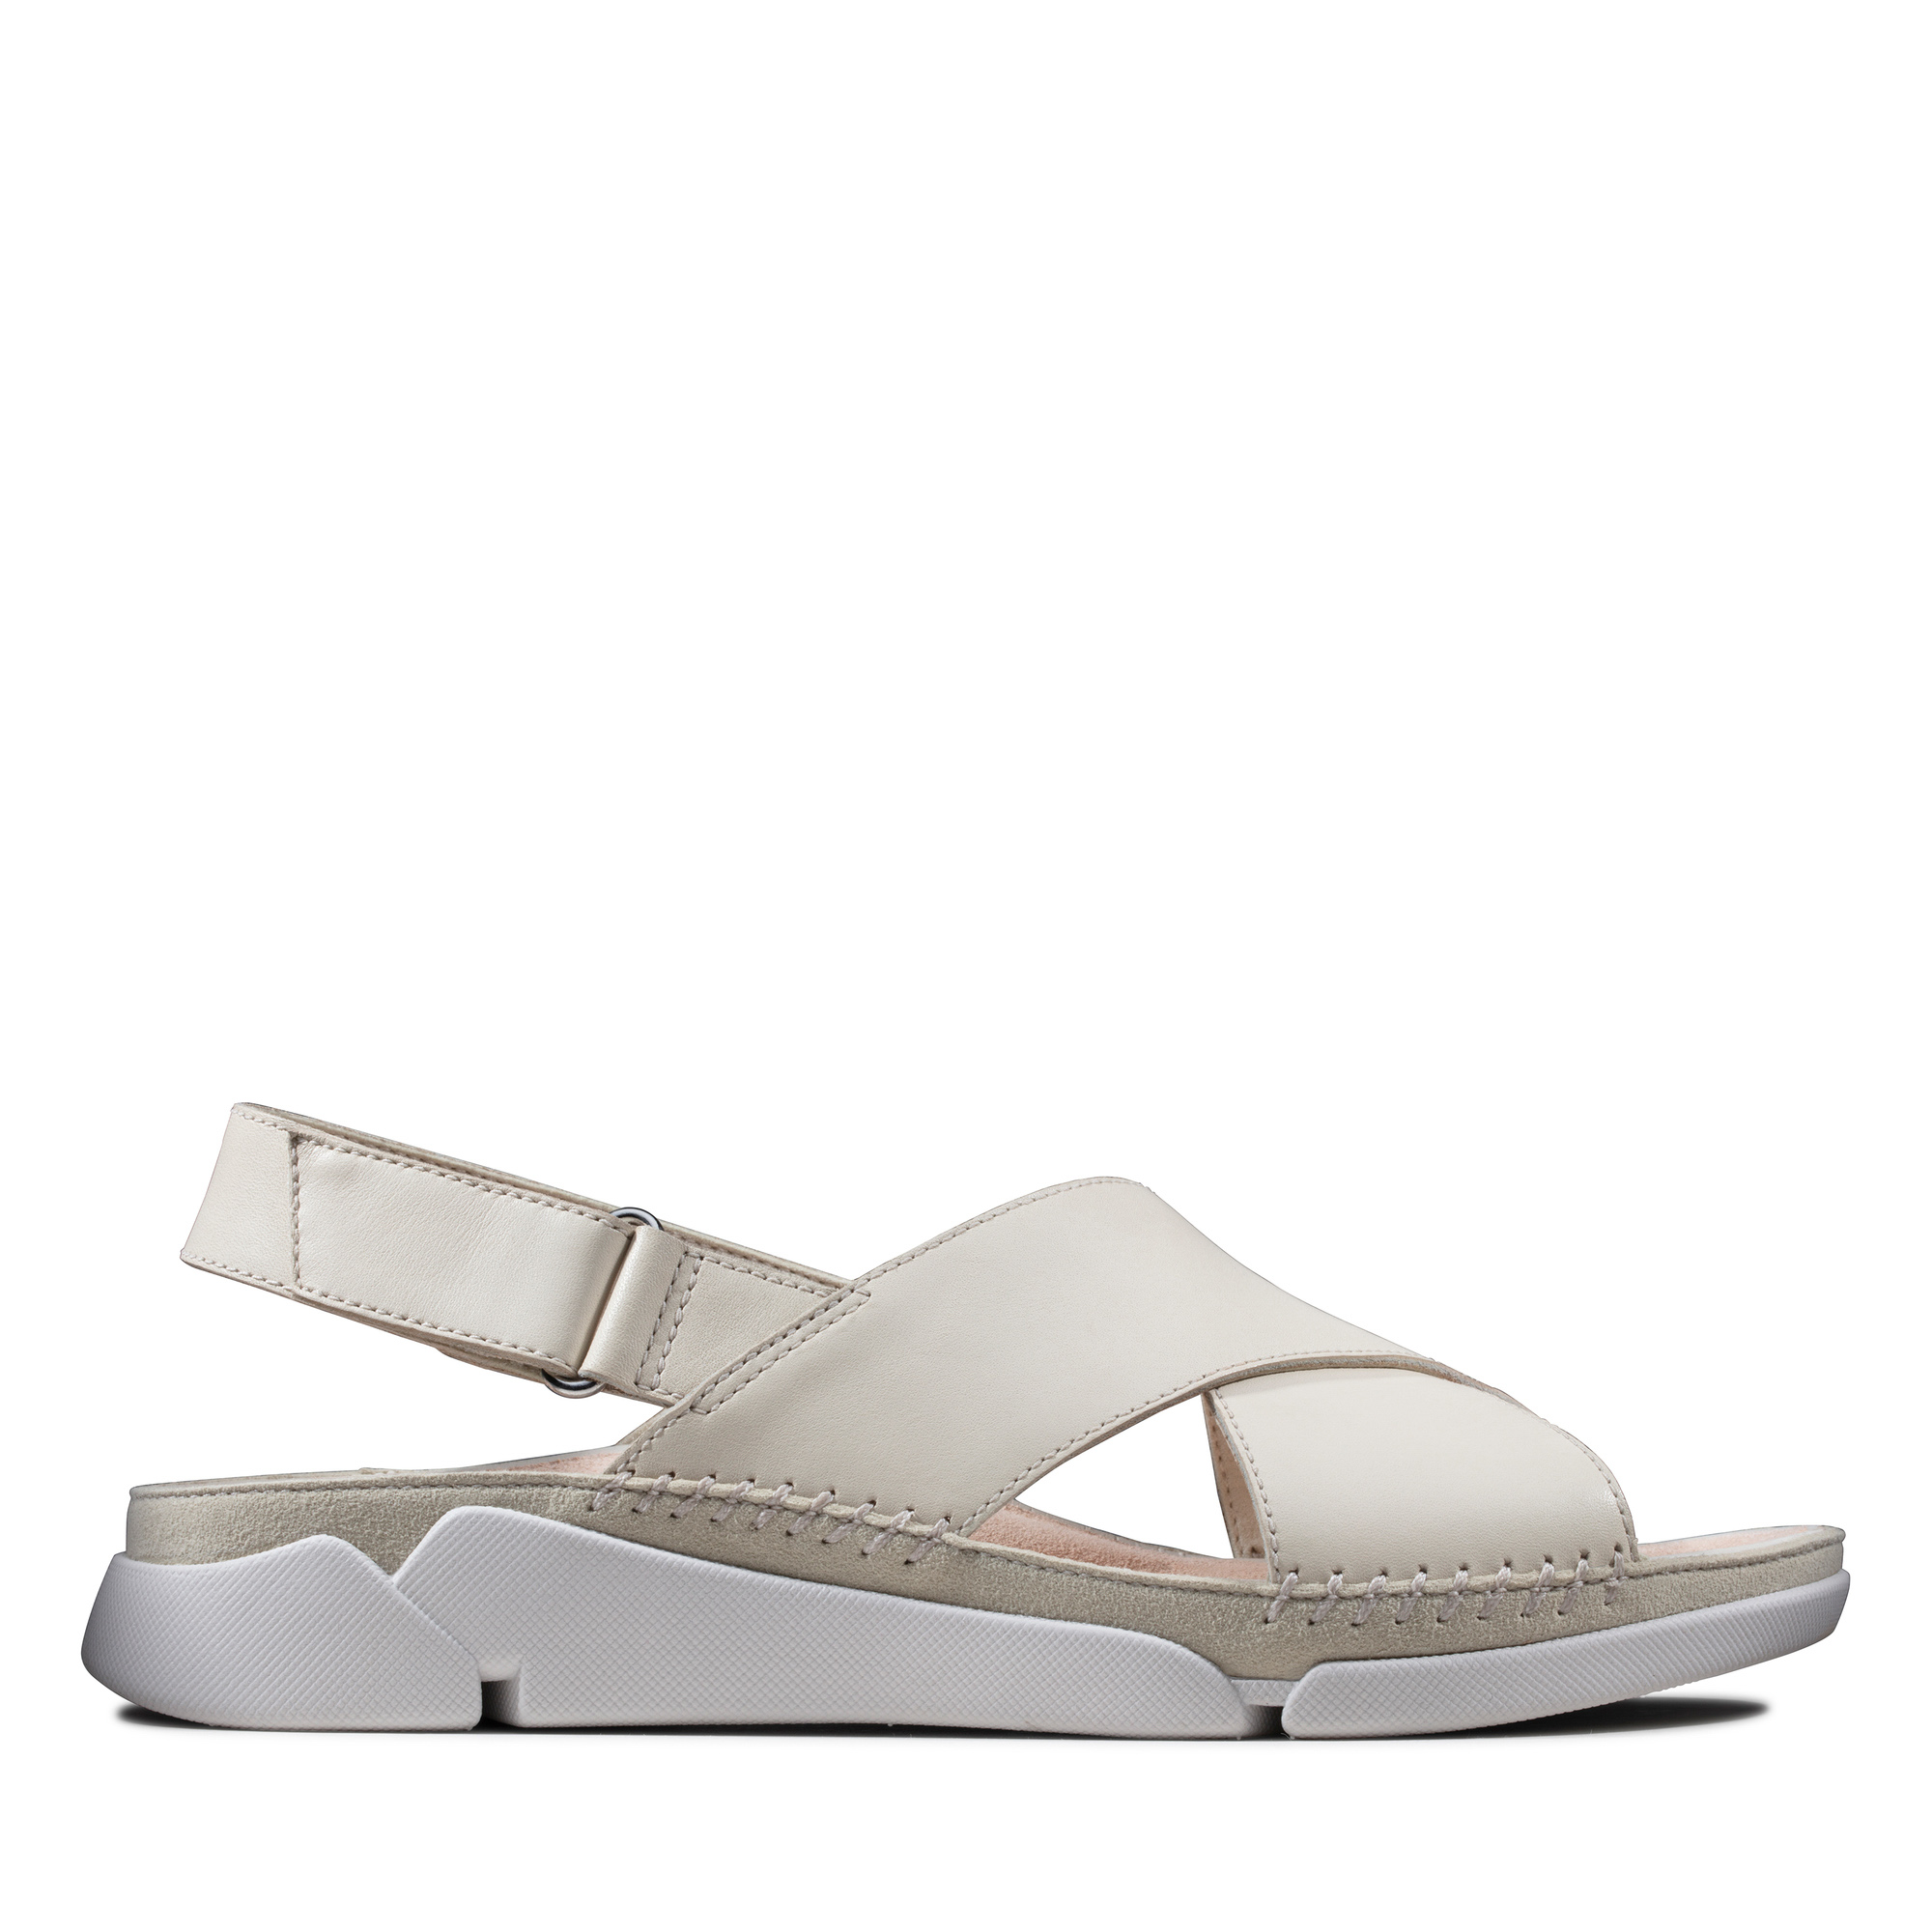 Women's Sandals | Leather Sandals | Free Delivery and